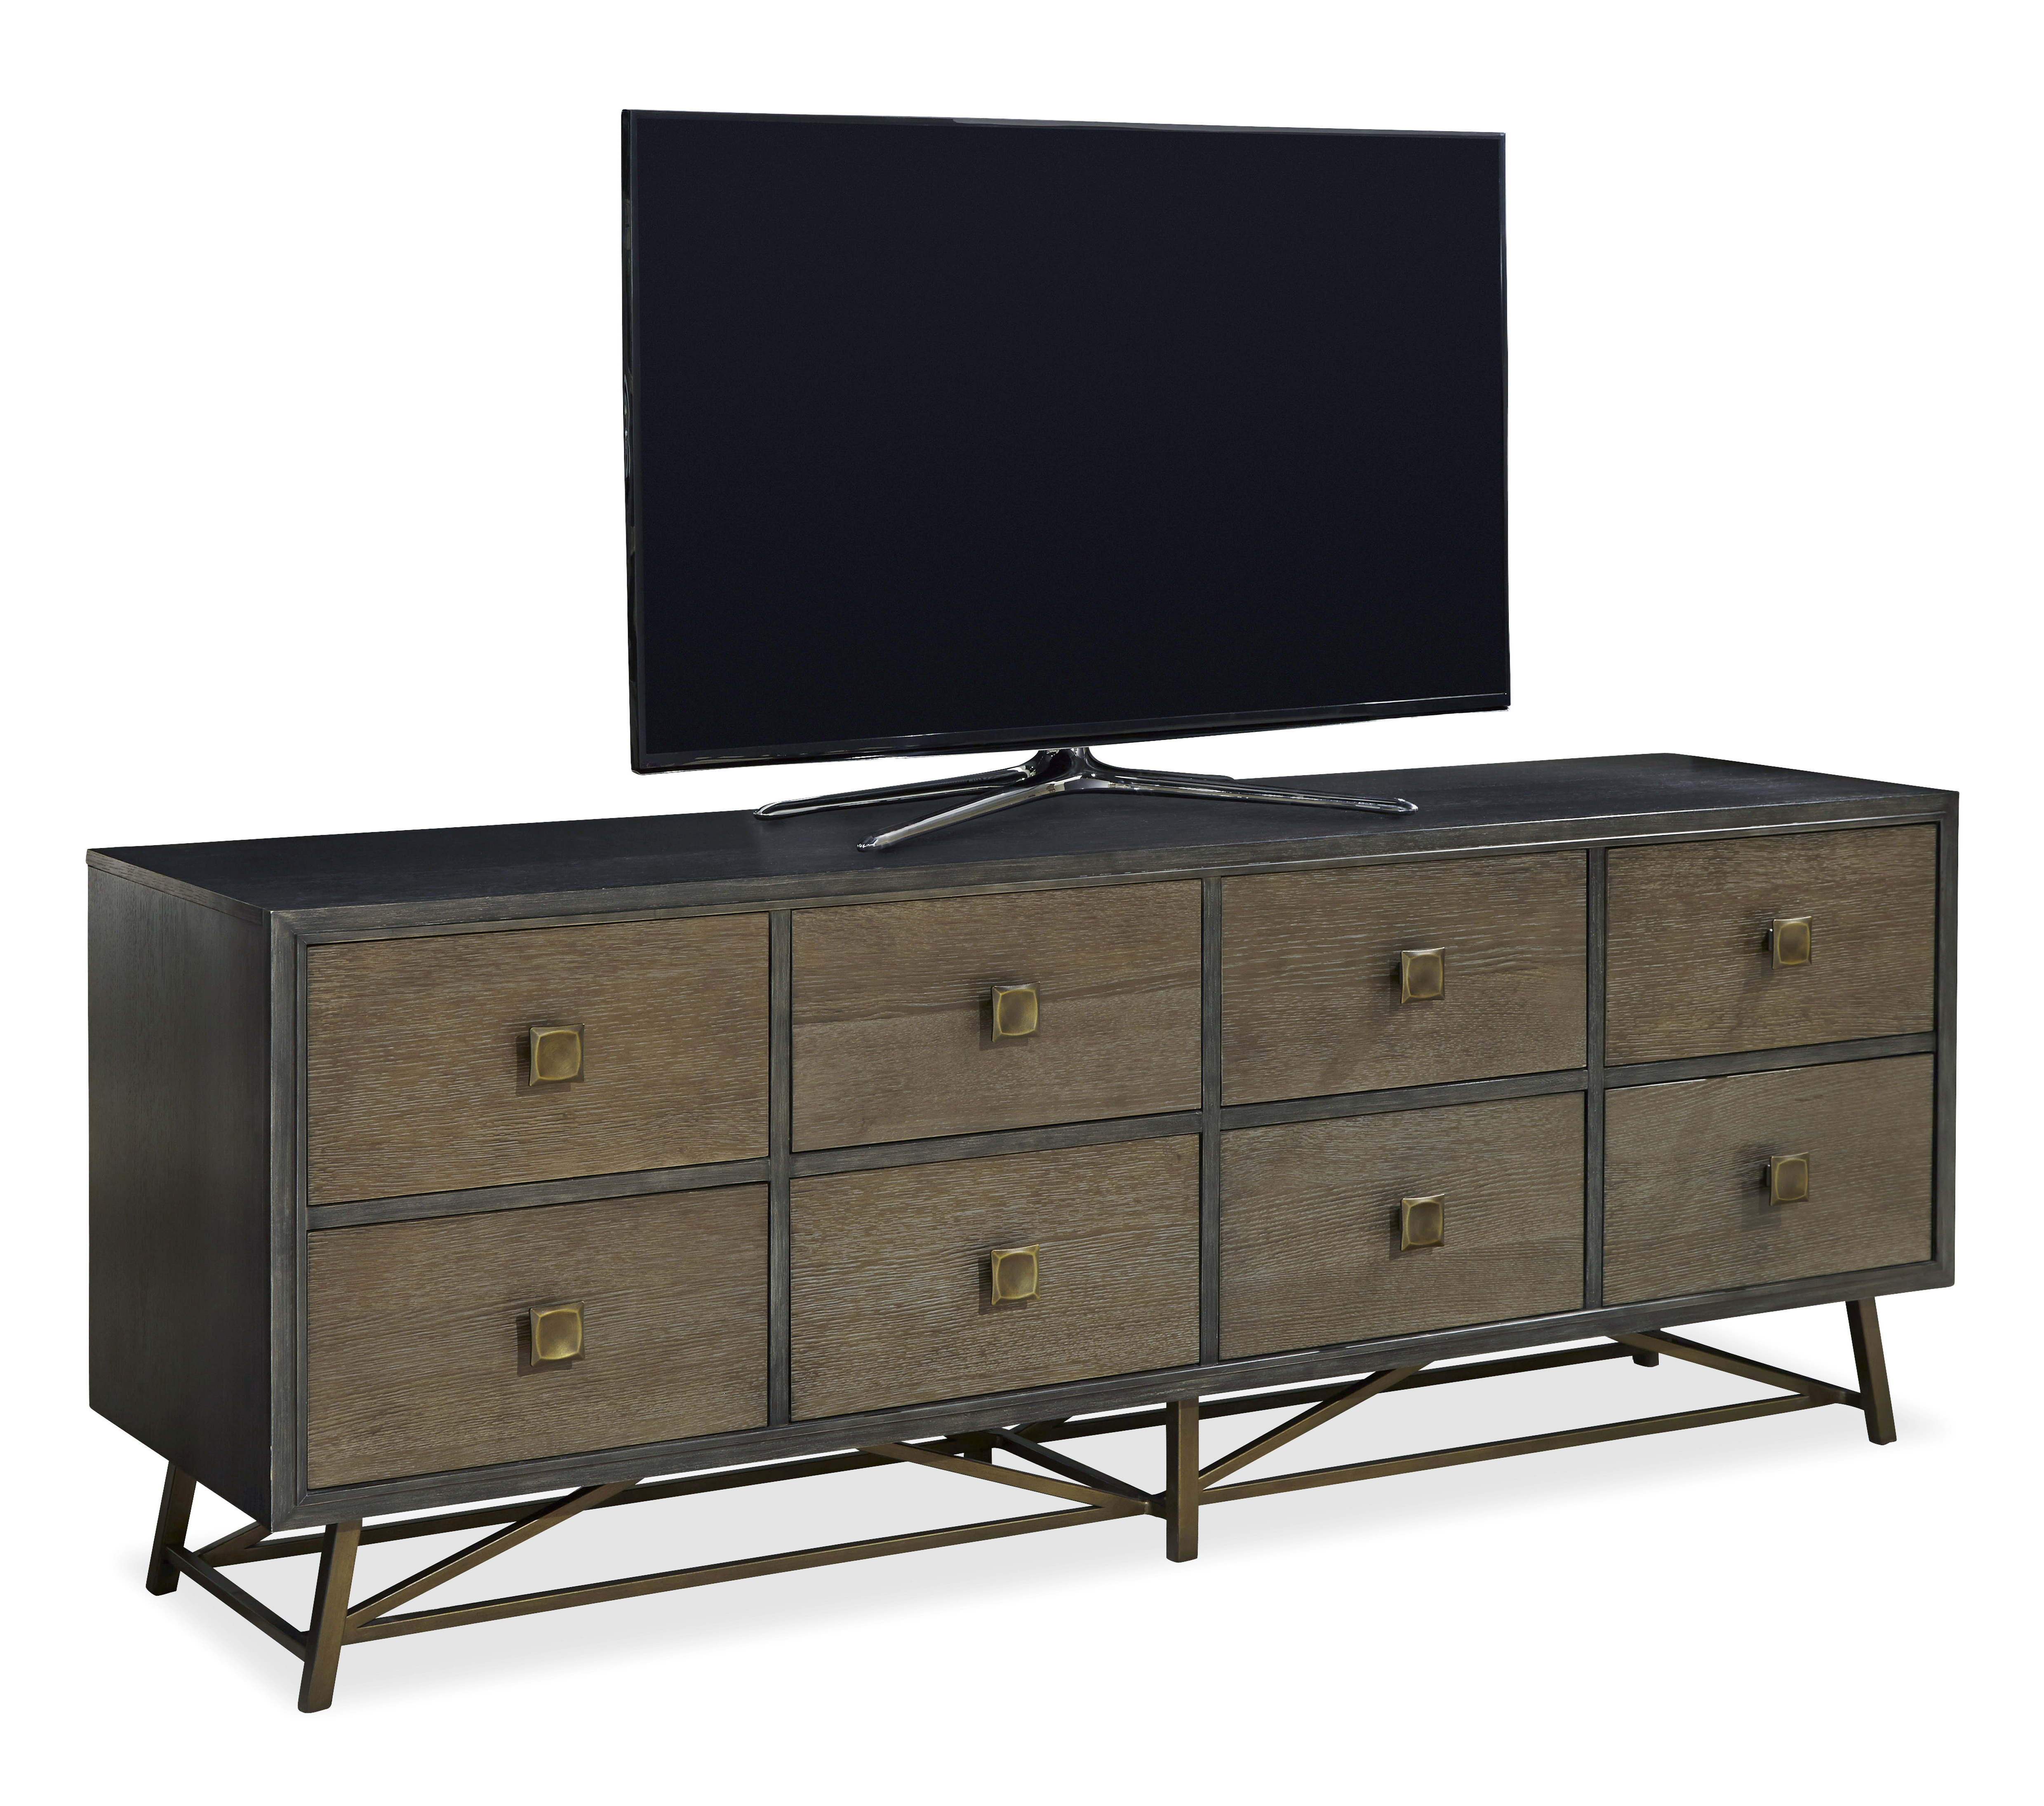 70 Inch Tv Stands | Joss & Main For Canyon 74 Inch Tv Stands (Gallery 5 of 20)